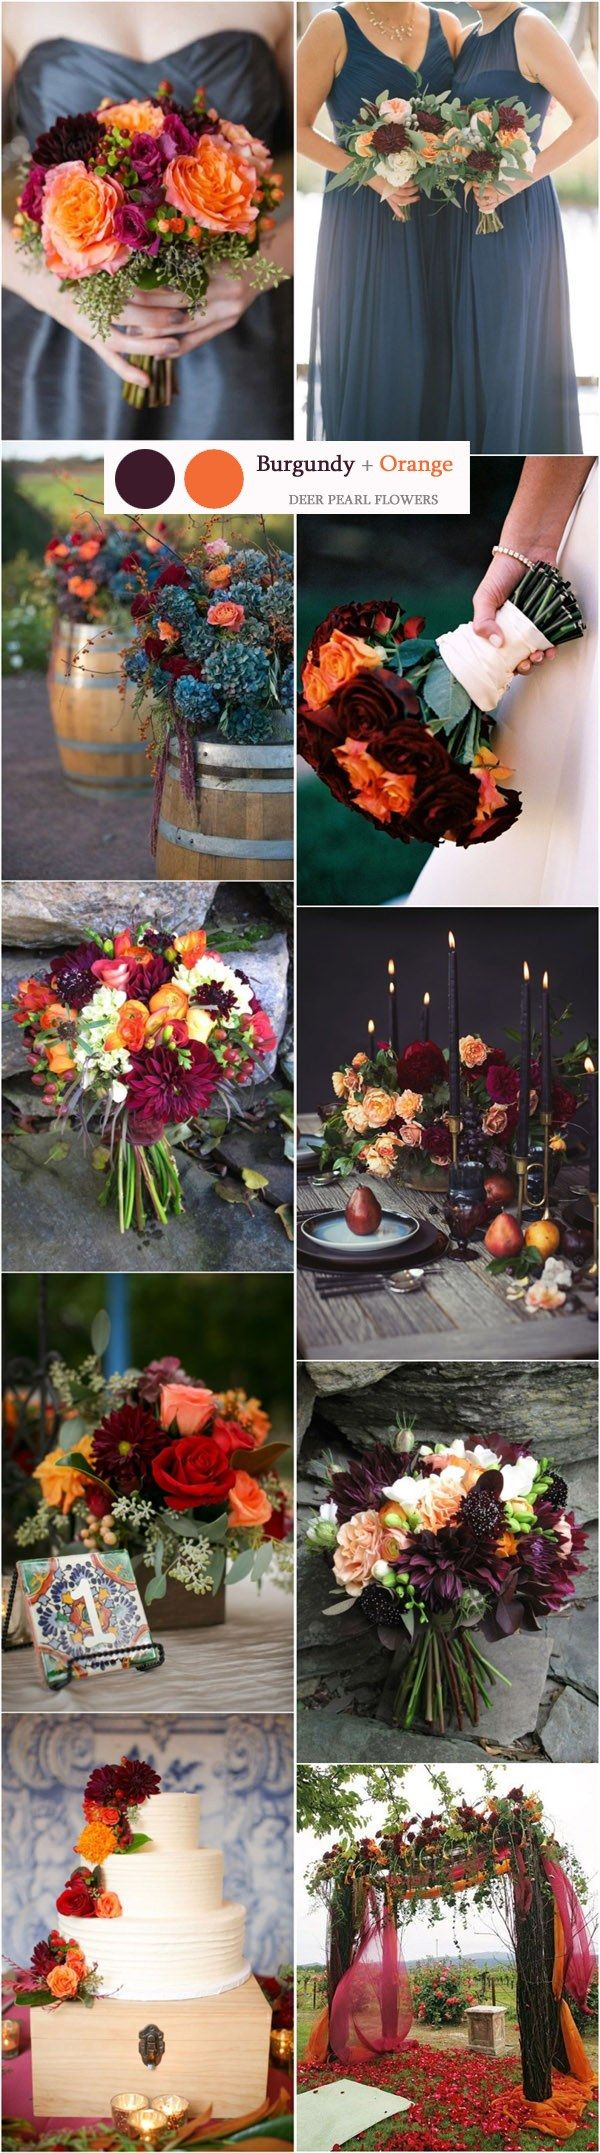 Wedding decorations teal and purple october 2018 Top  Burgundy Wedding Color Palettes Youull Love  Boda Colores de